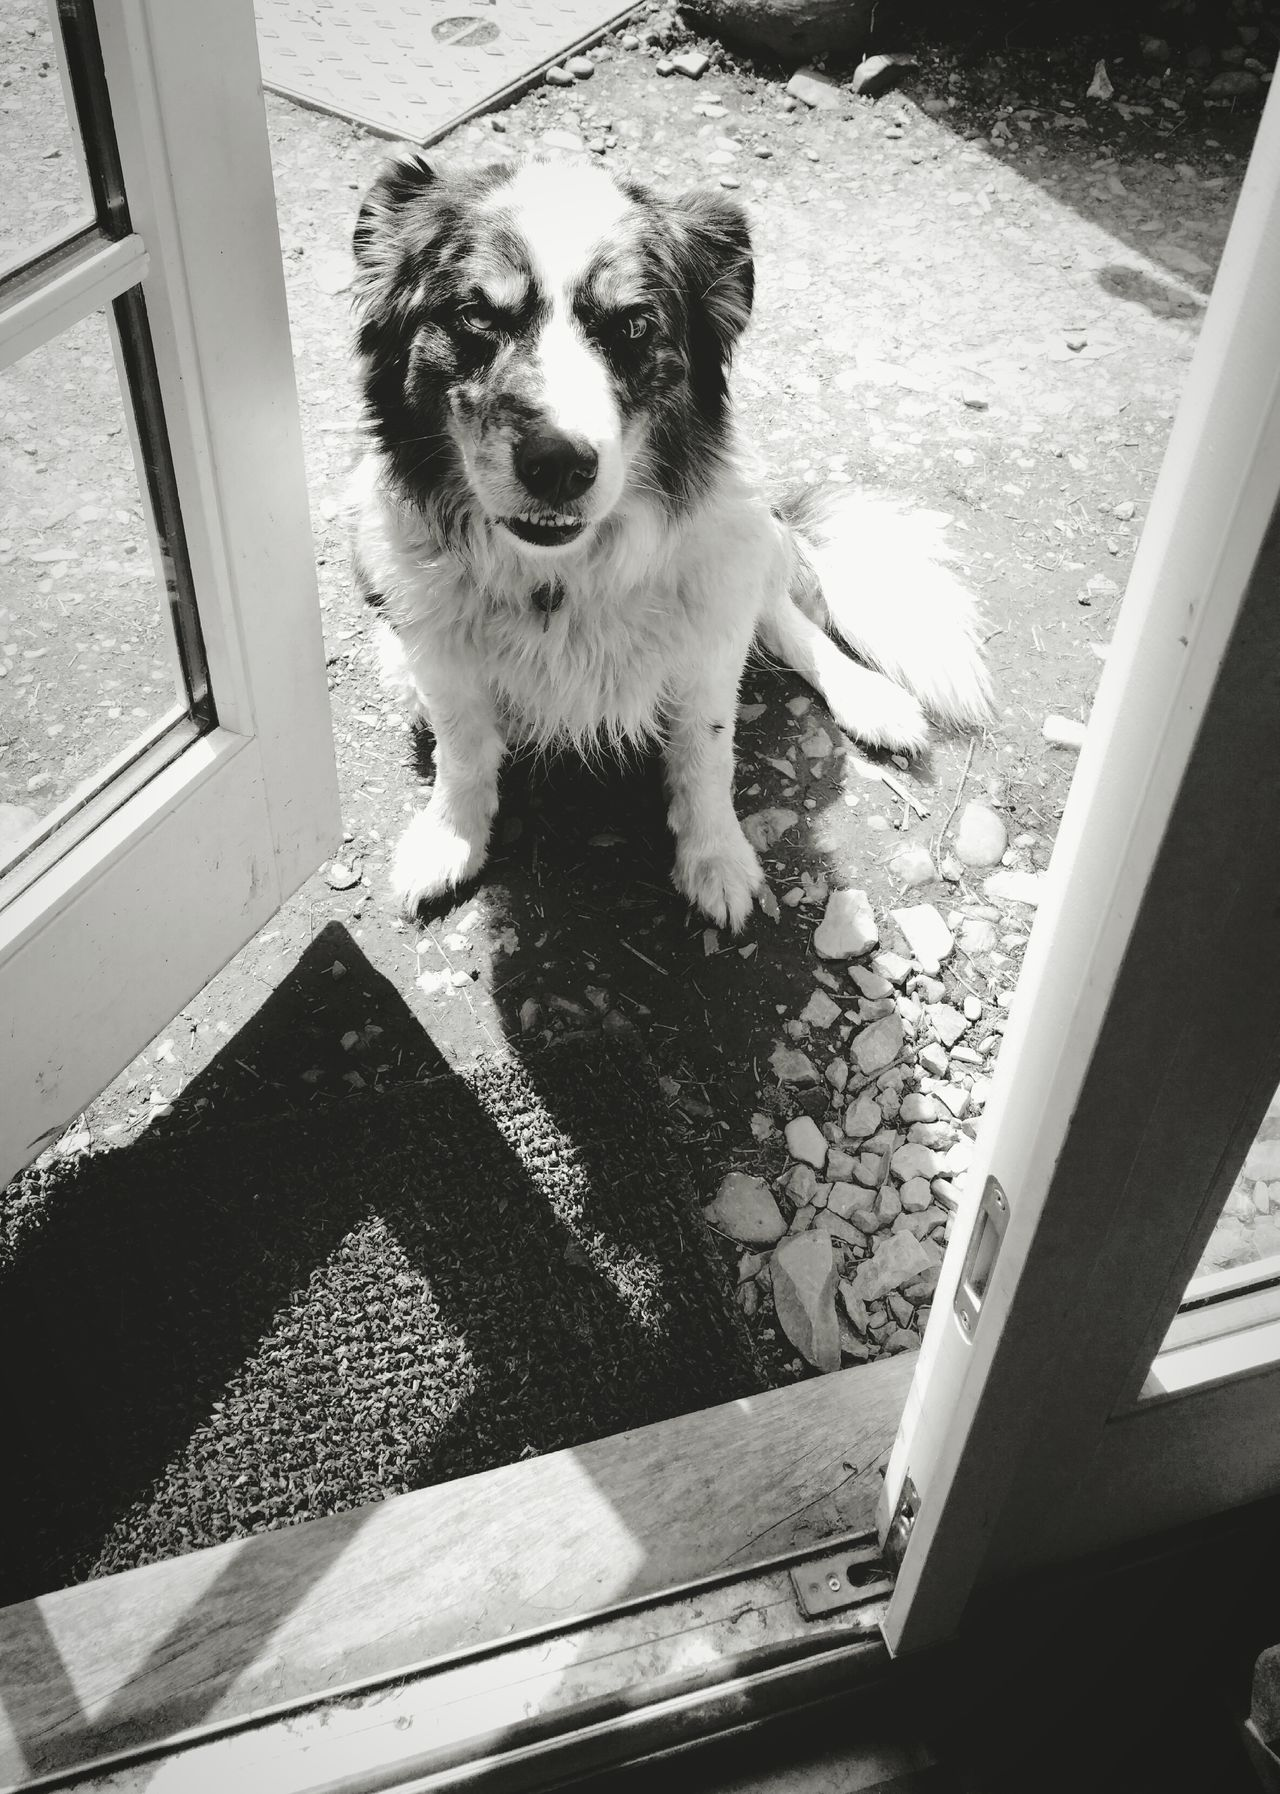 ... please let me in ... Pets Dog One Animal Animal Themes Domestic Animals Mammal Sitting Portrait Close-up Monochrome Mono Blackandwhite Black And White Sheepdog Border Collie Blue Merle Dogs Merle собака овчарка пес Light And Shadow Door Doorway French Doors Entrance